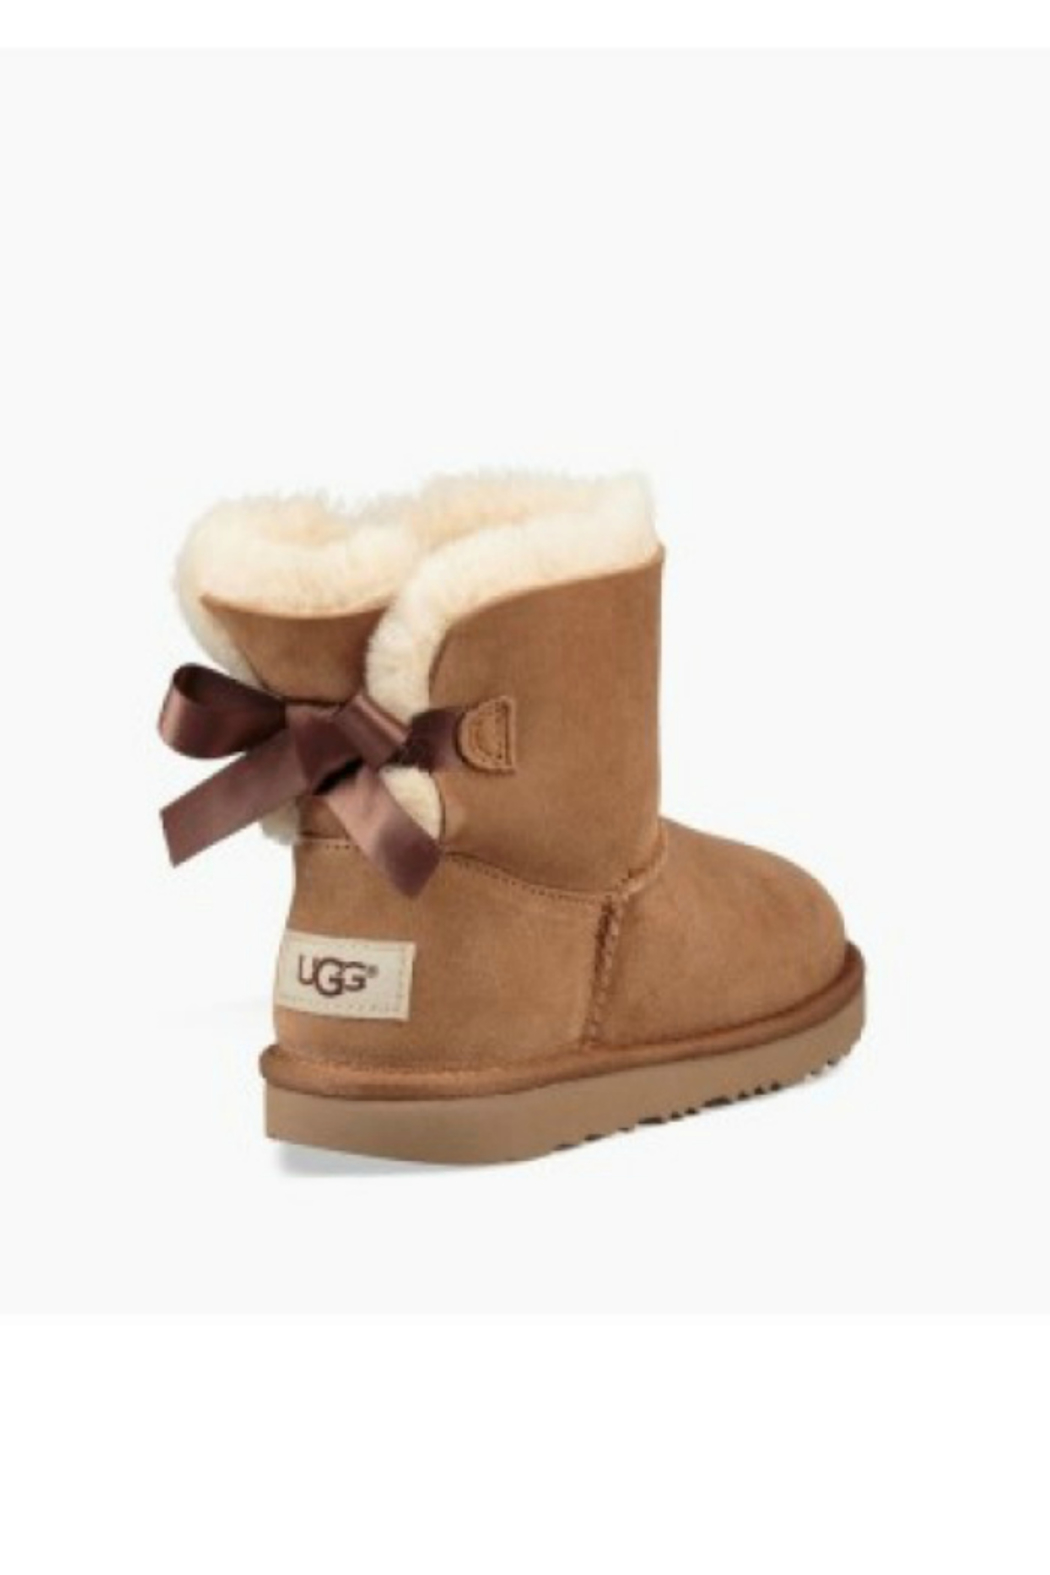 Ugg UGG KIDS MINI BAILEY BOW II - Side Cropped Image